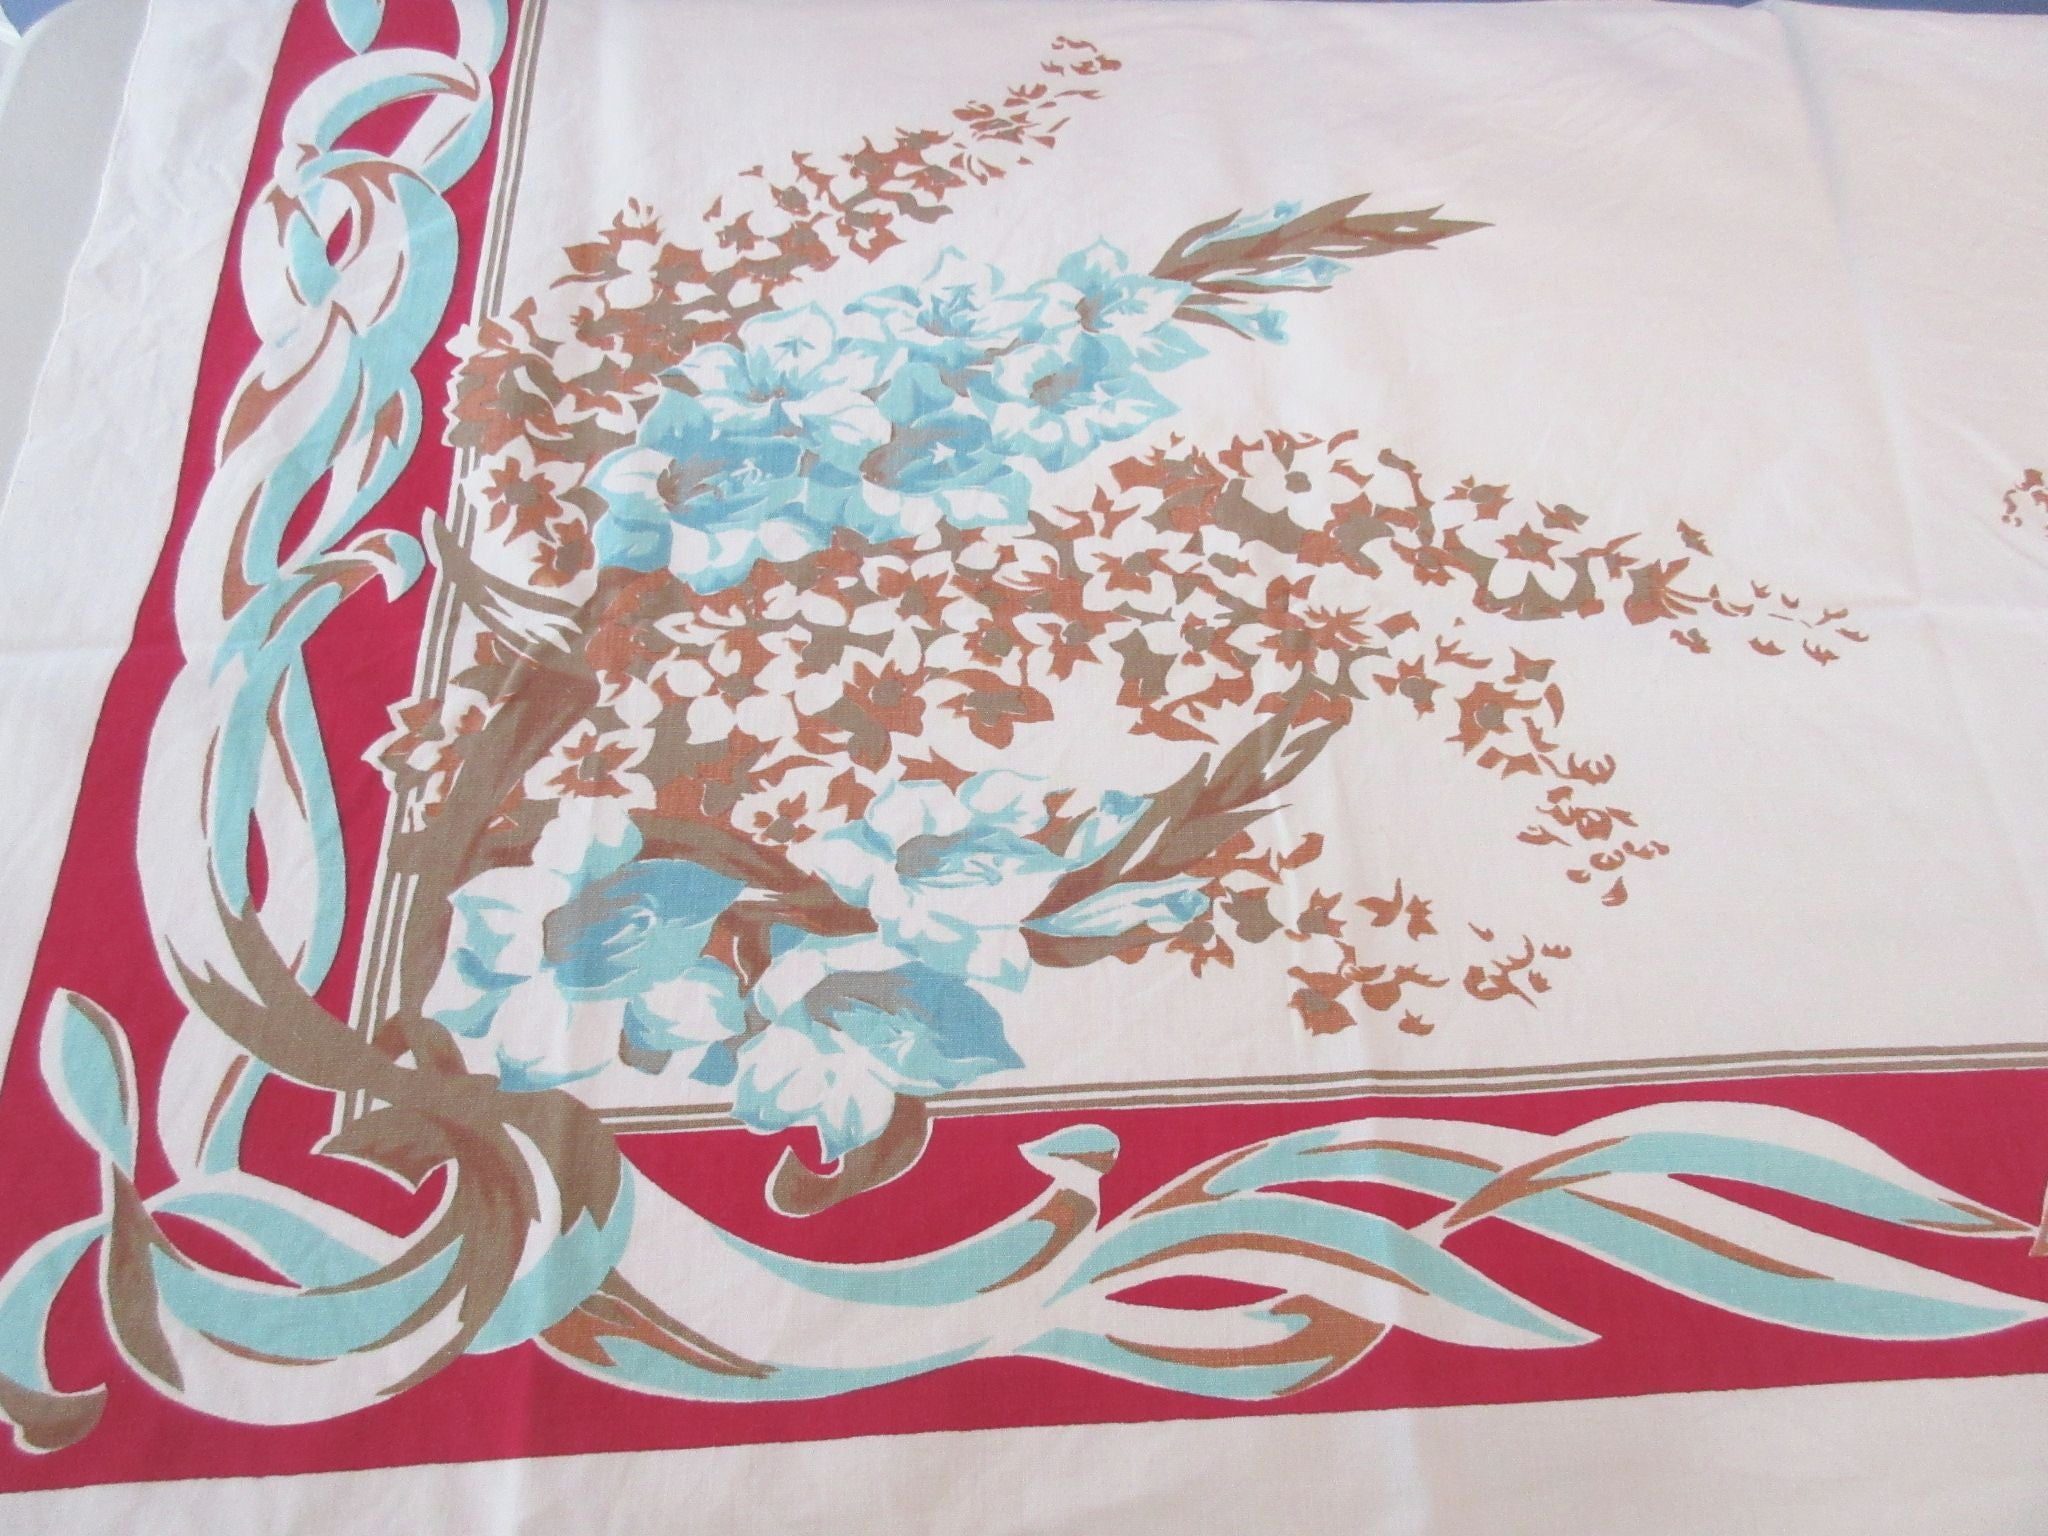 Shabby Tan Aqua Gladioli on Red Floral Vintage Printed Tablecloth (54 X 48)